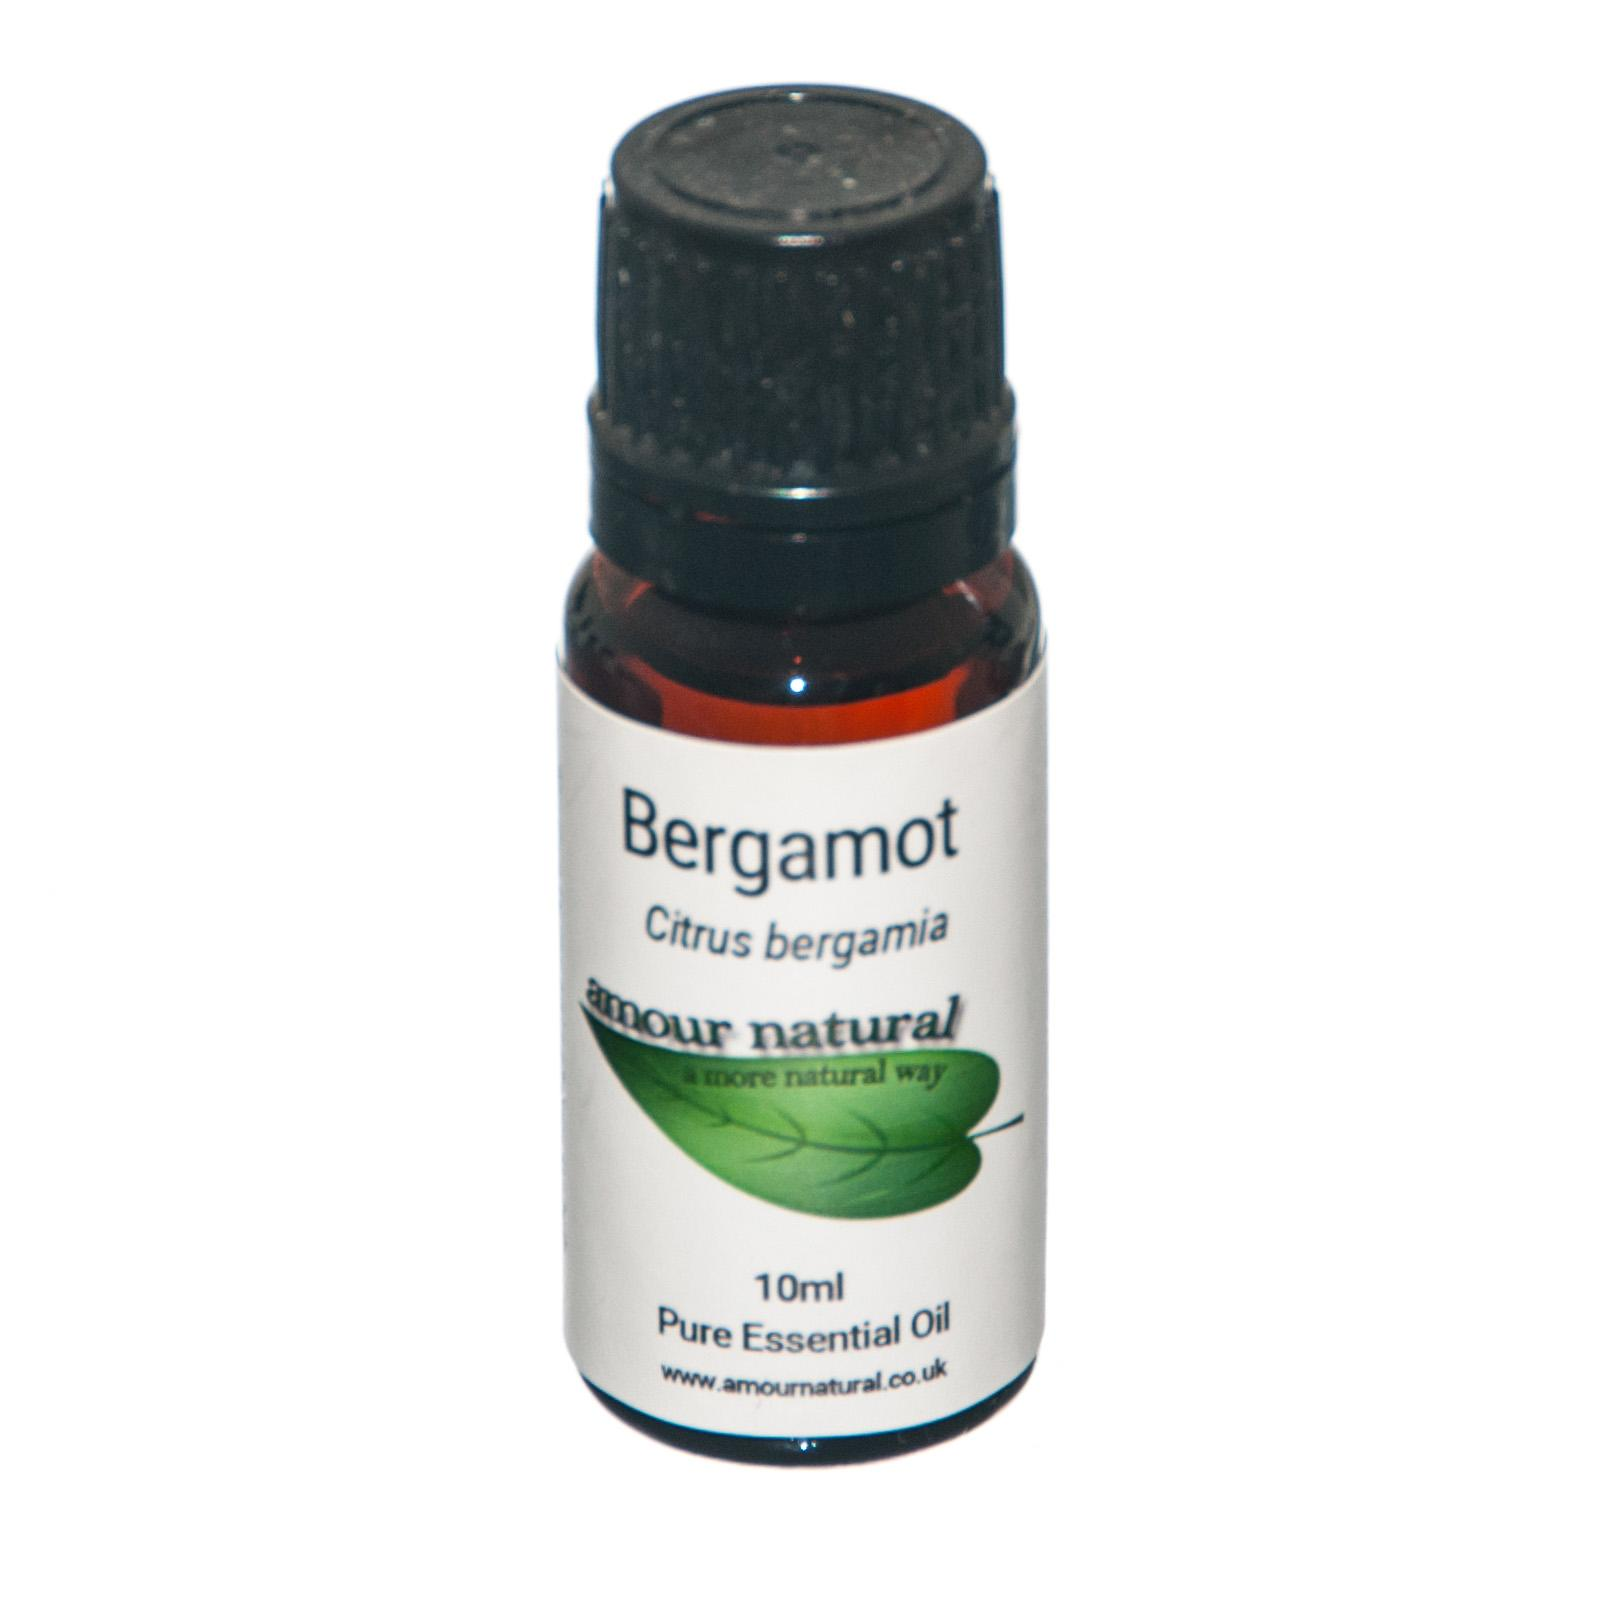 1 X 10 ml bottle of Bergamot Essential Oil